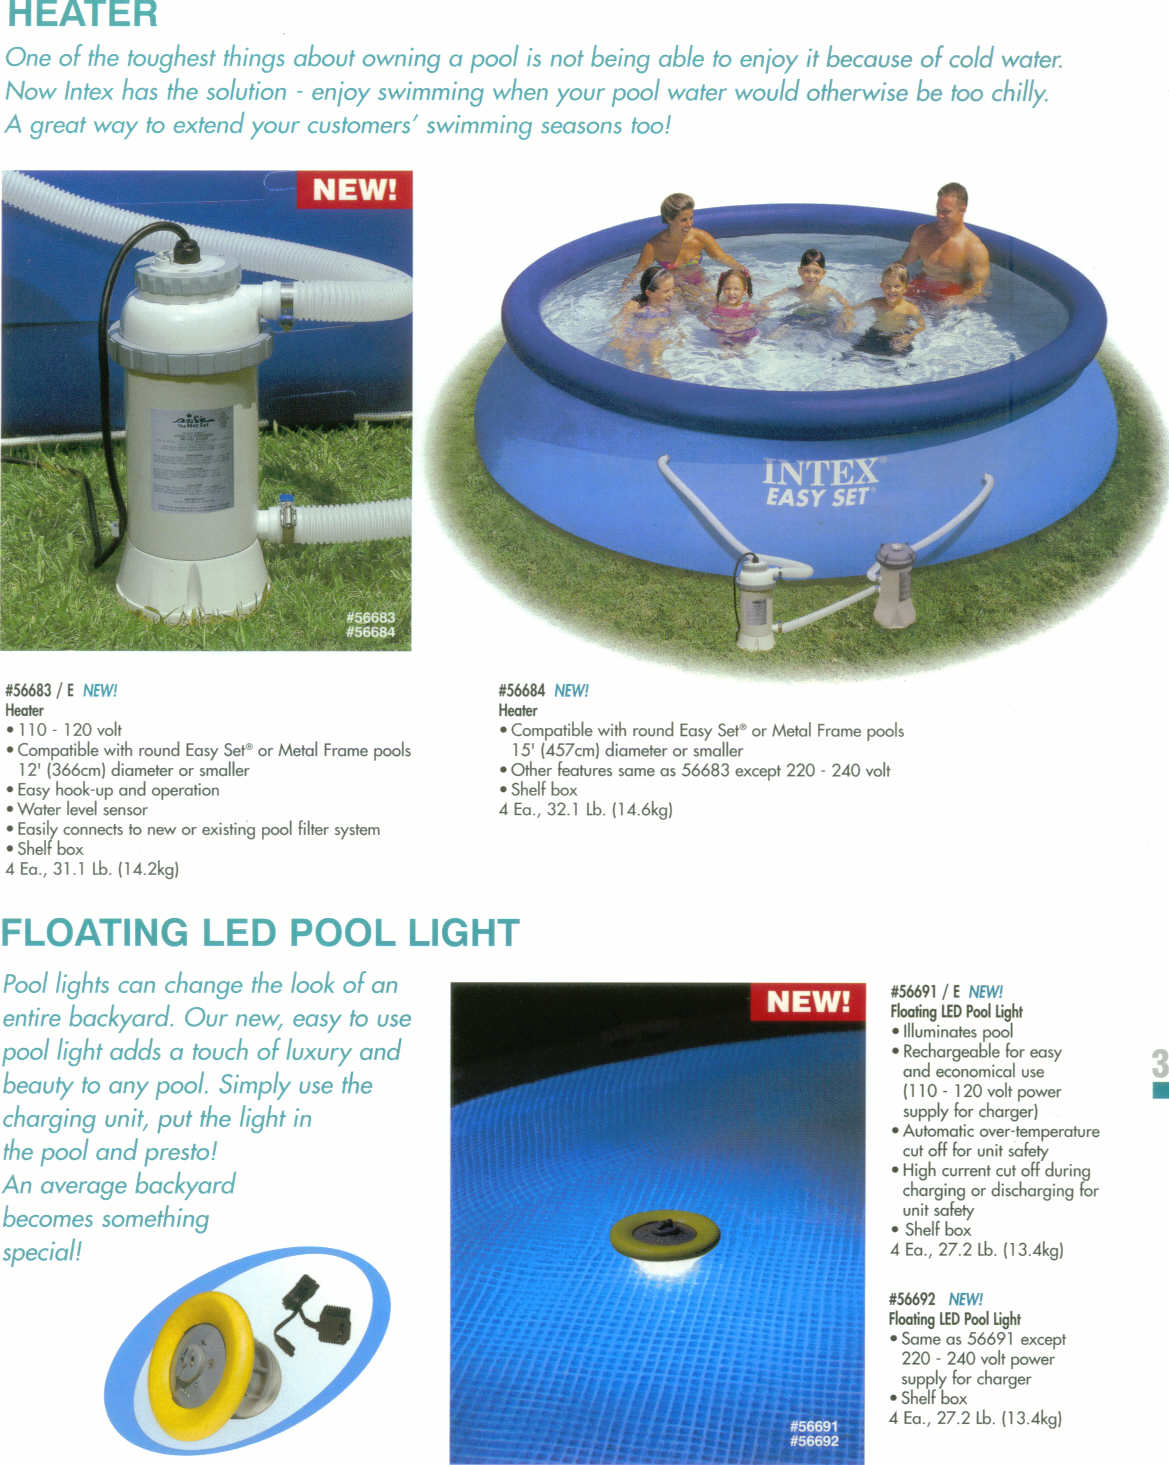 Intex pool heater 110 volts 3 kw Intex 3kw electric swimming pool heater